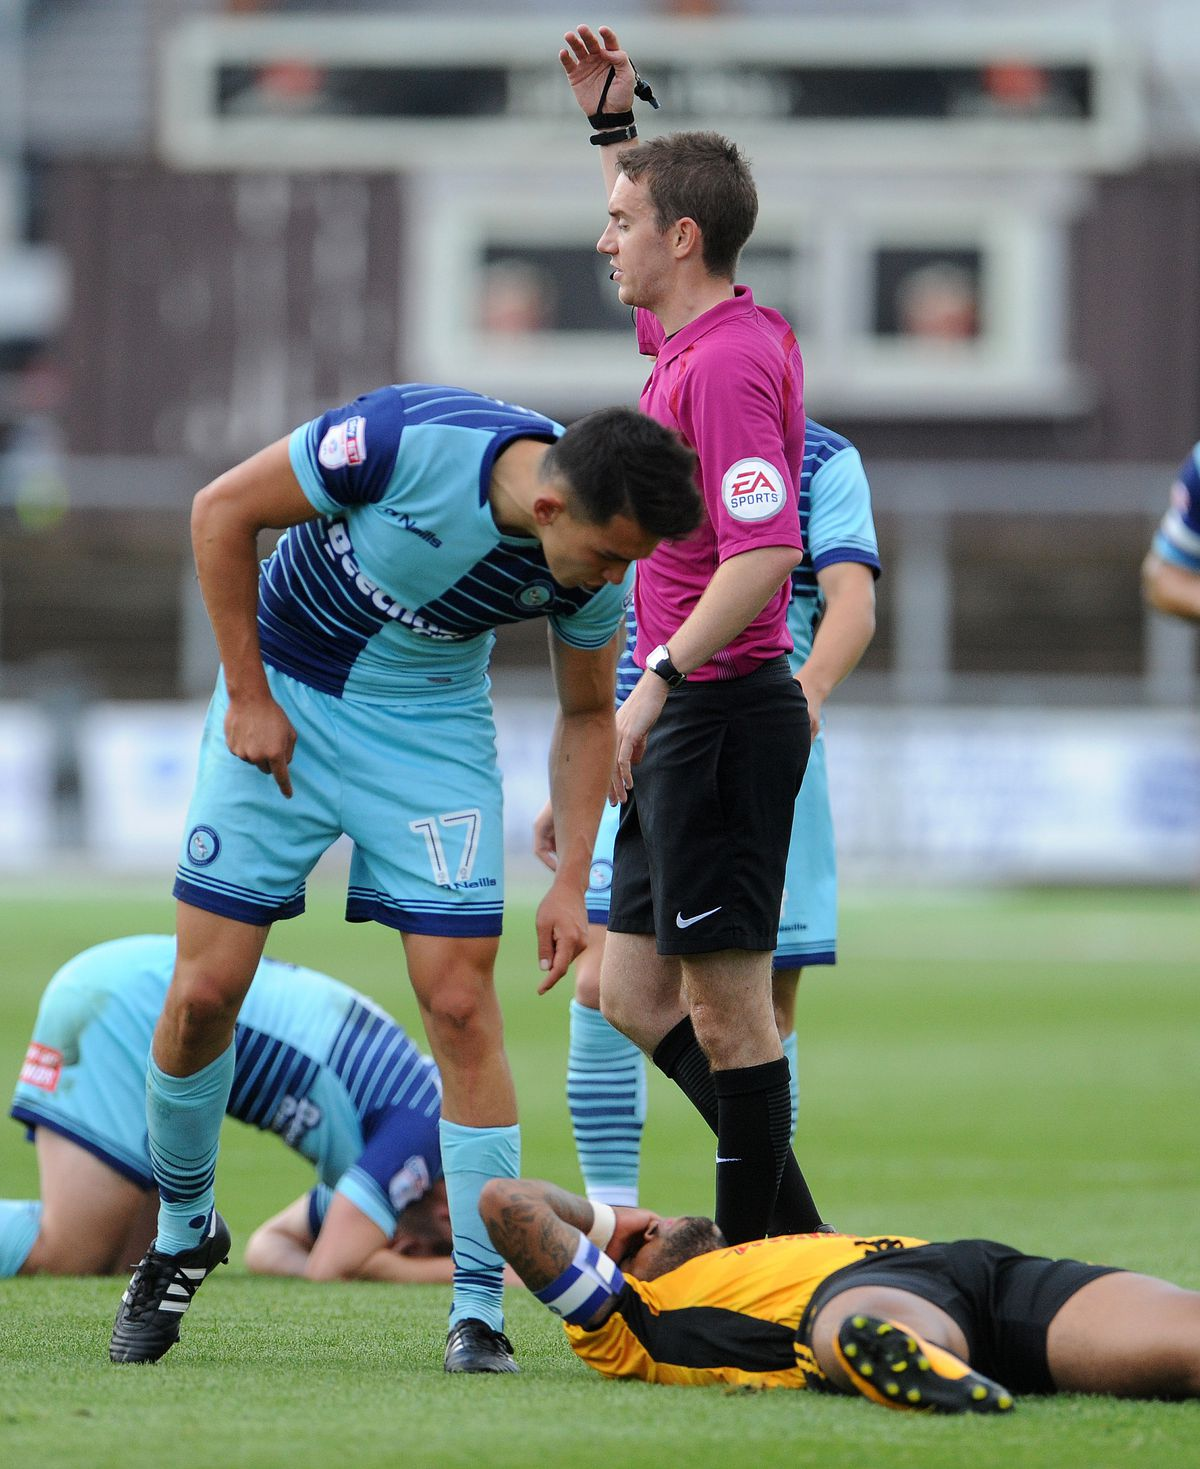 Newport County v Wycombe Wanderers - Sky Bet League Two